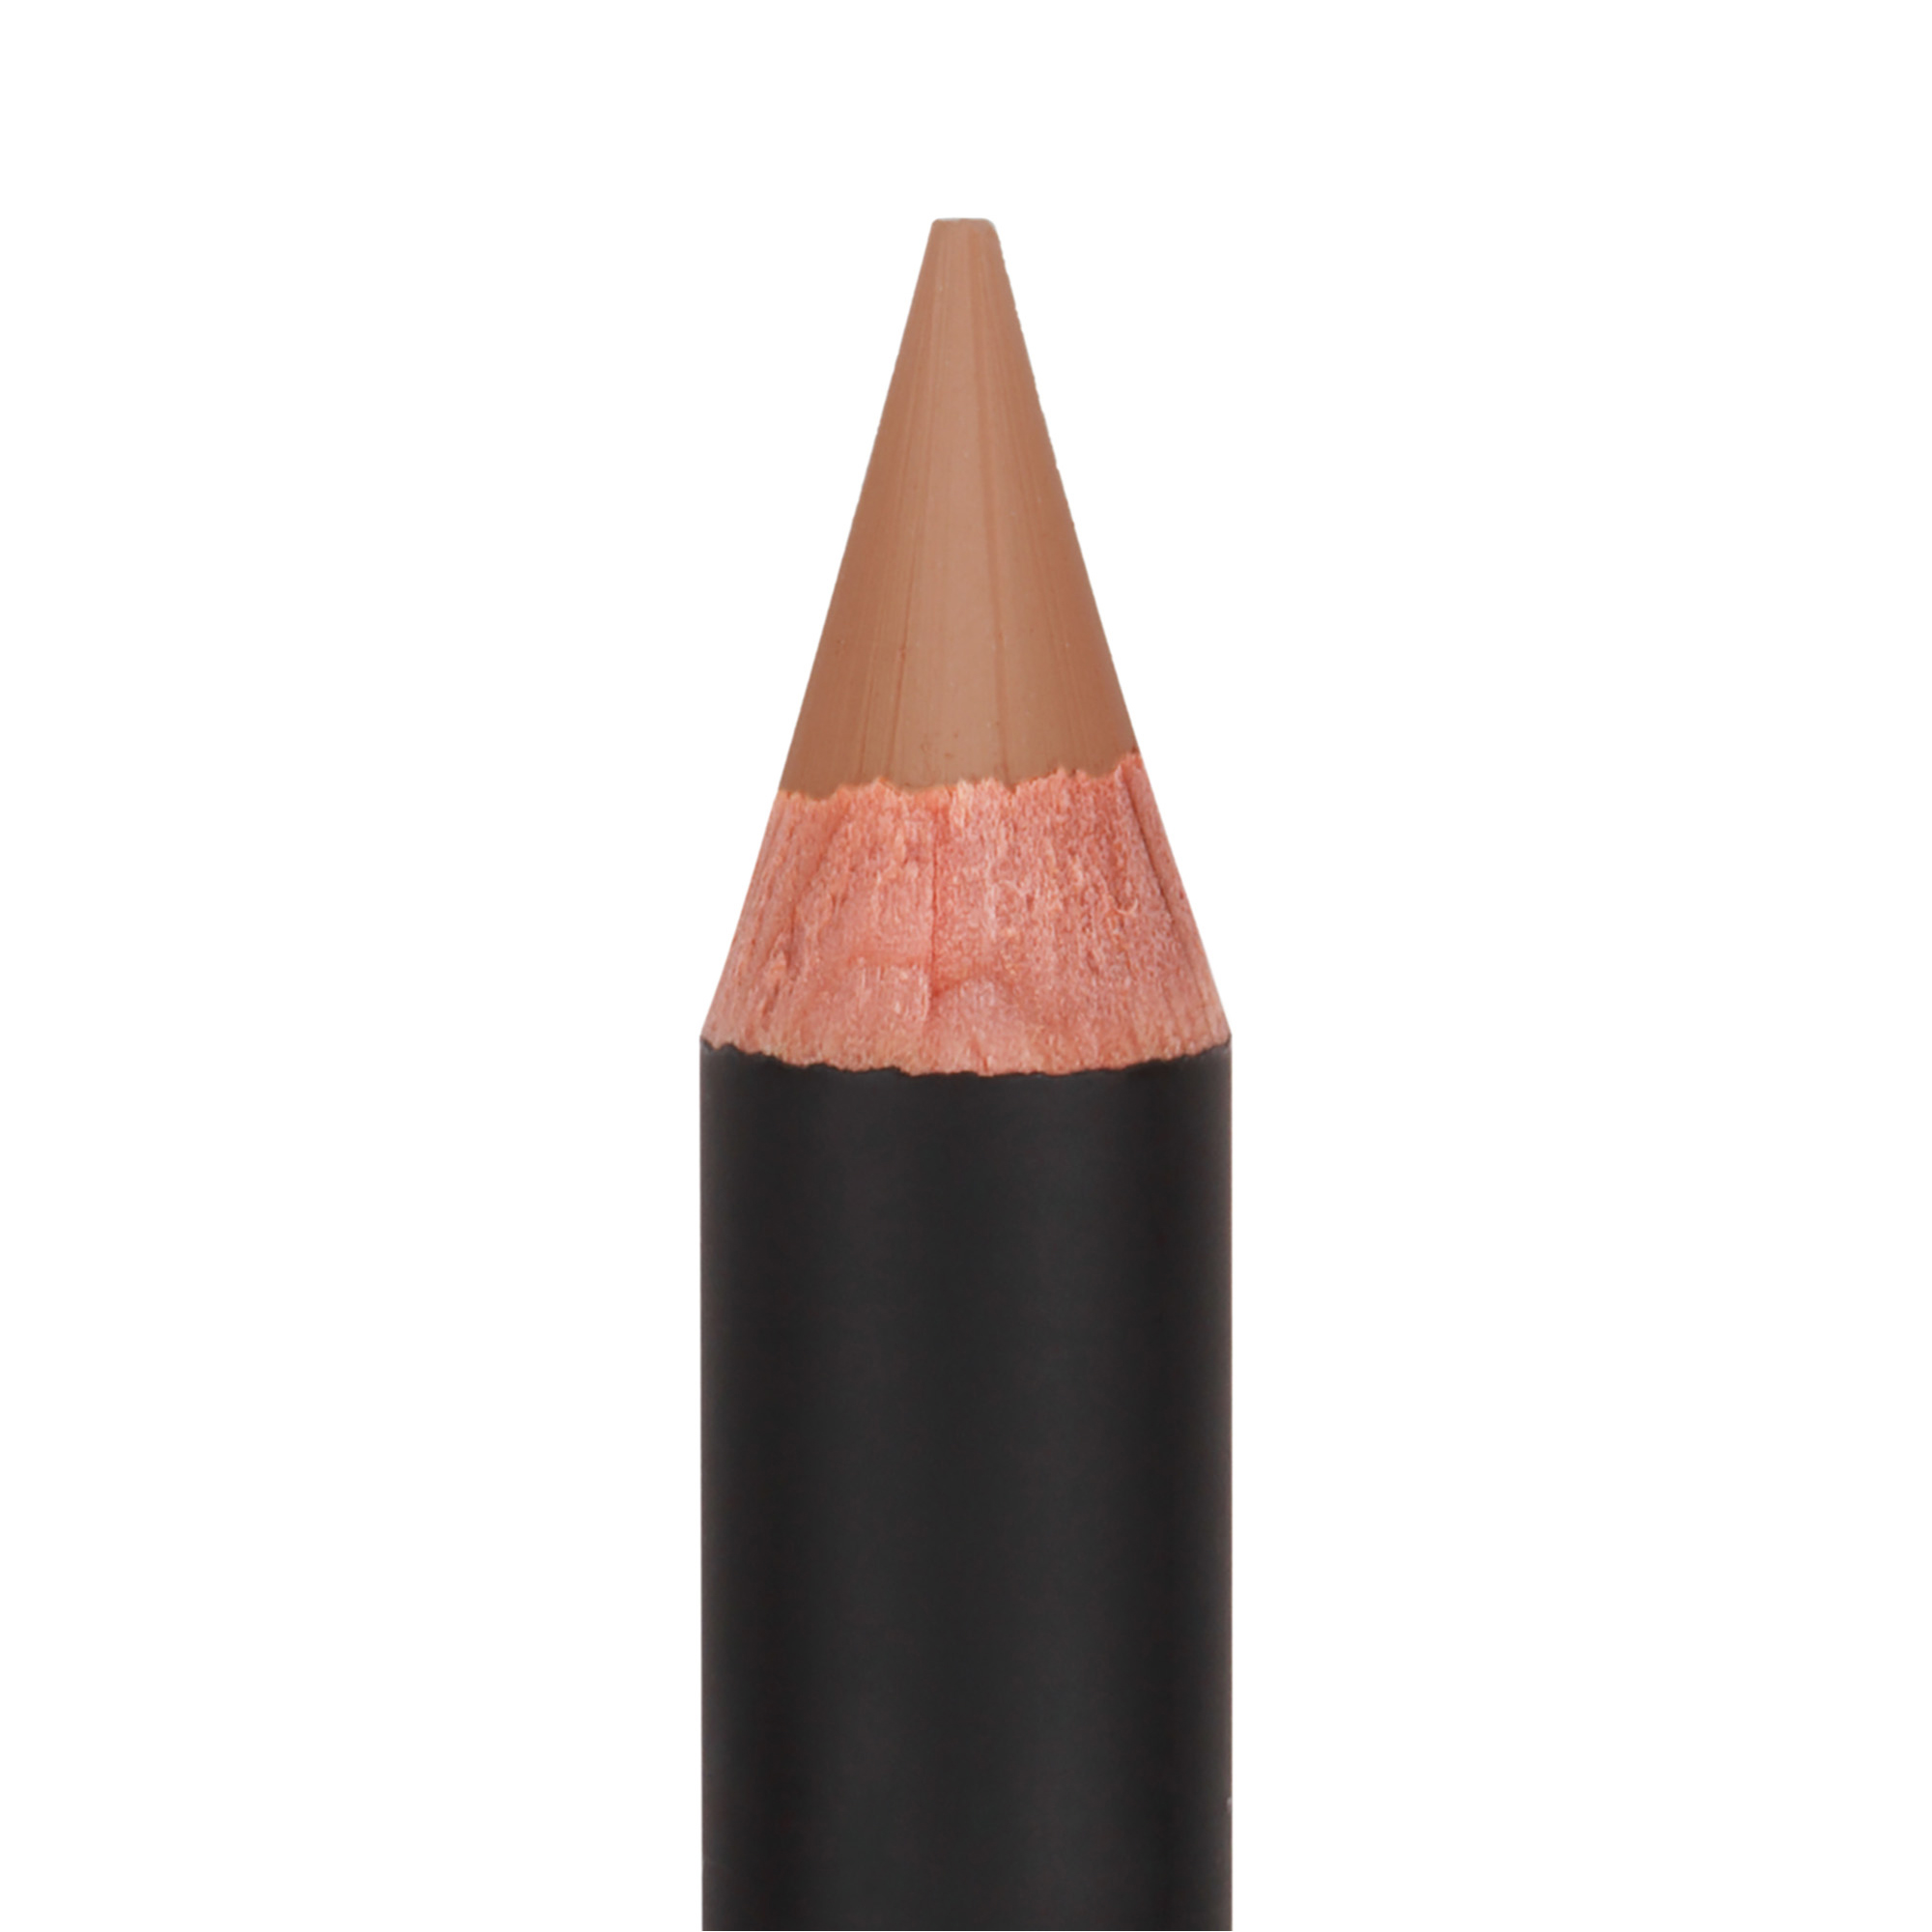 Pro Pencil - Base 3